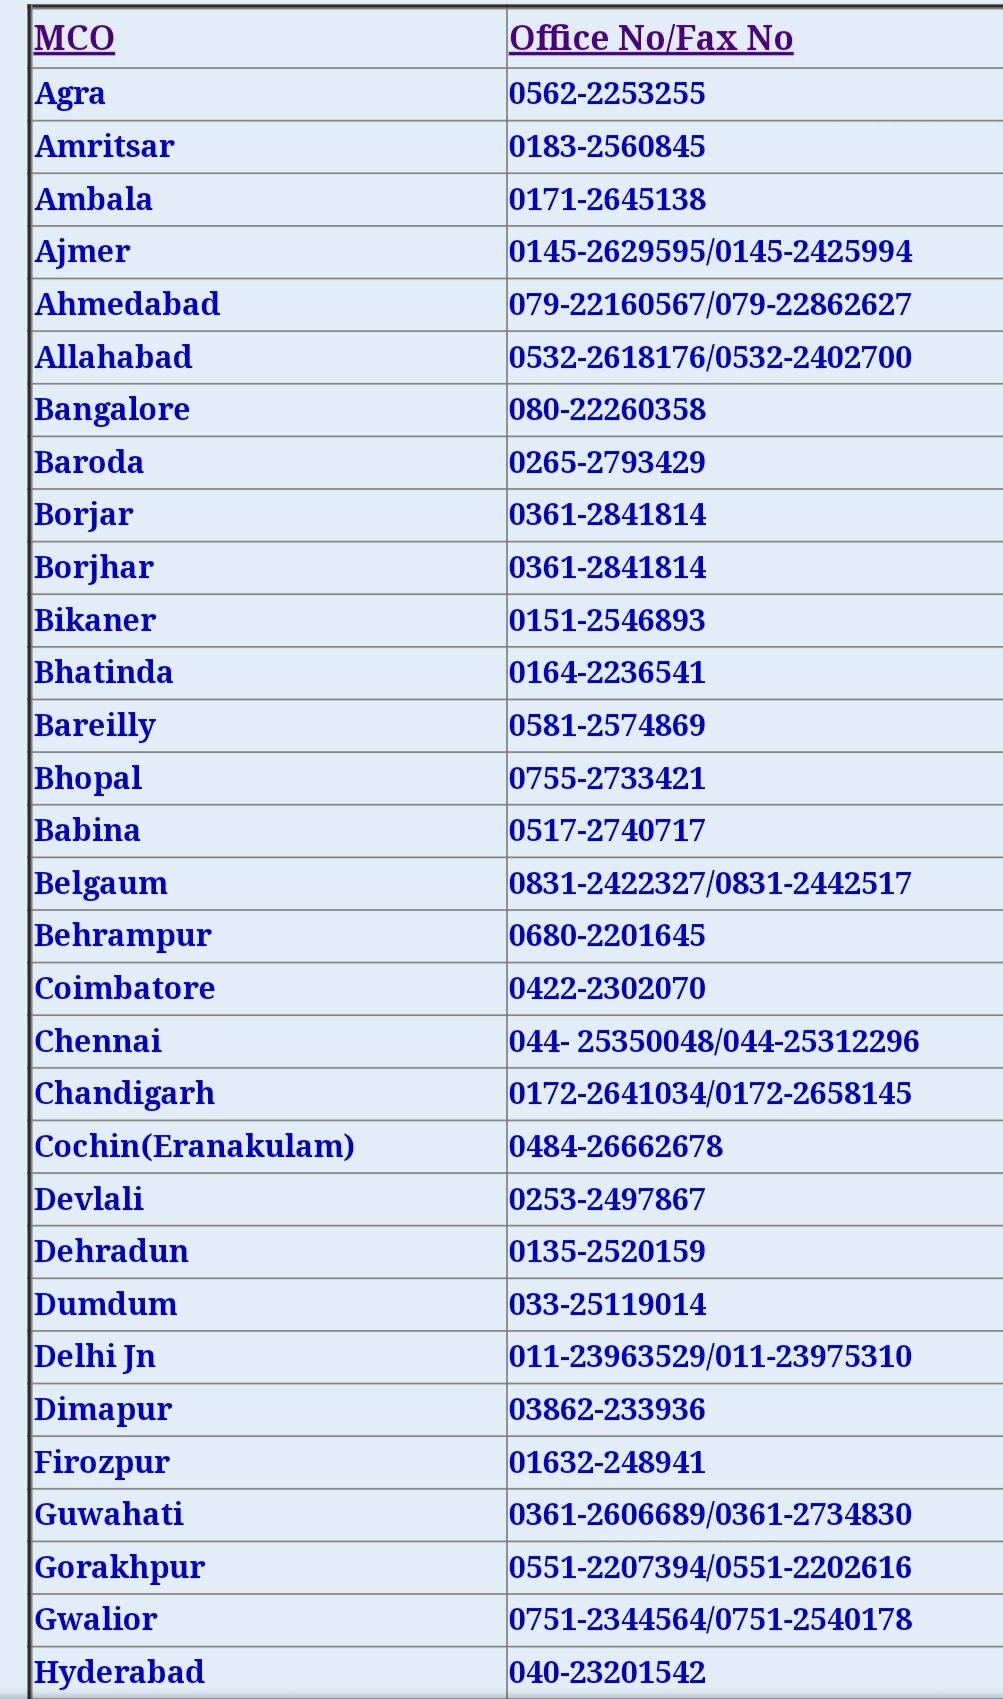 All MCO Contact Number